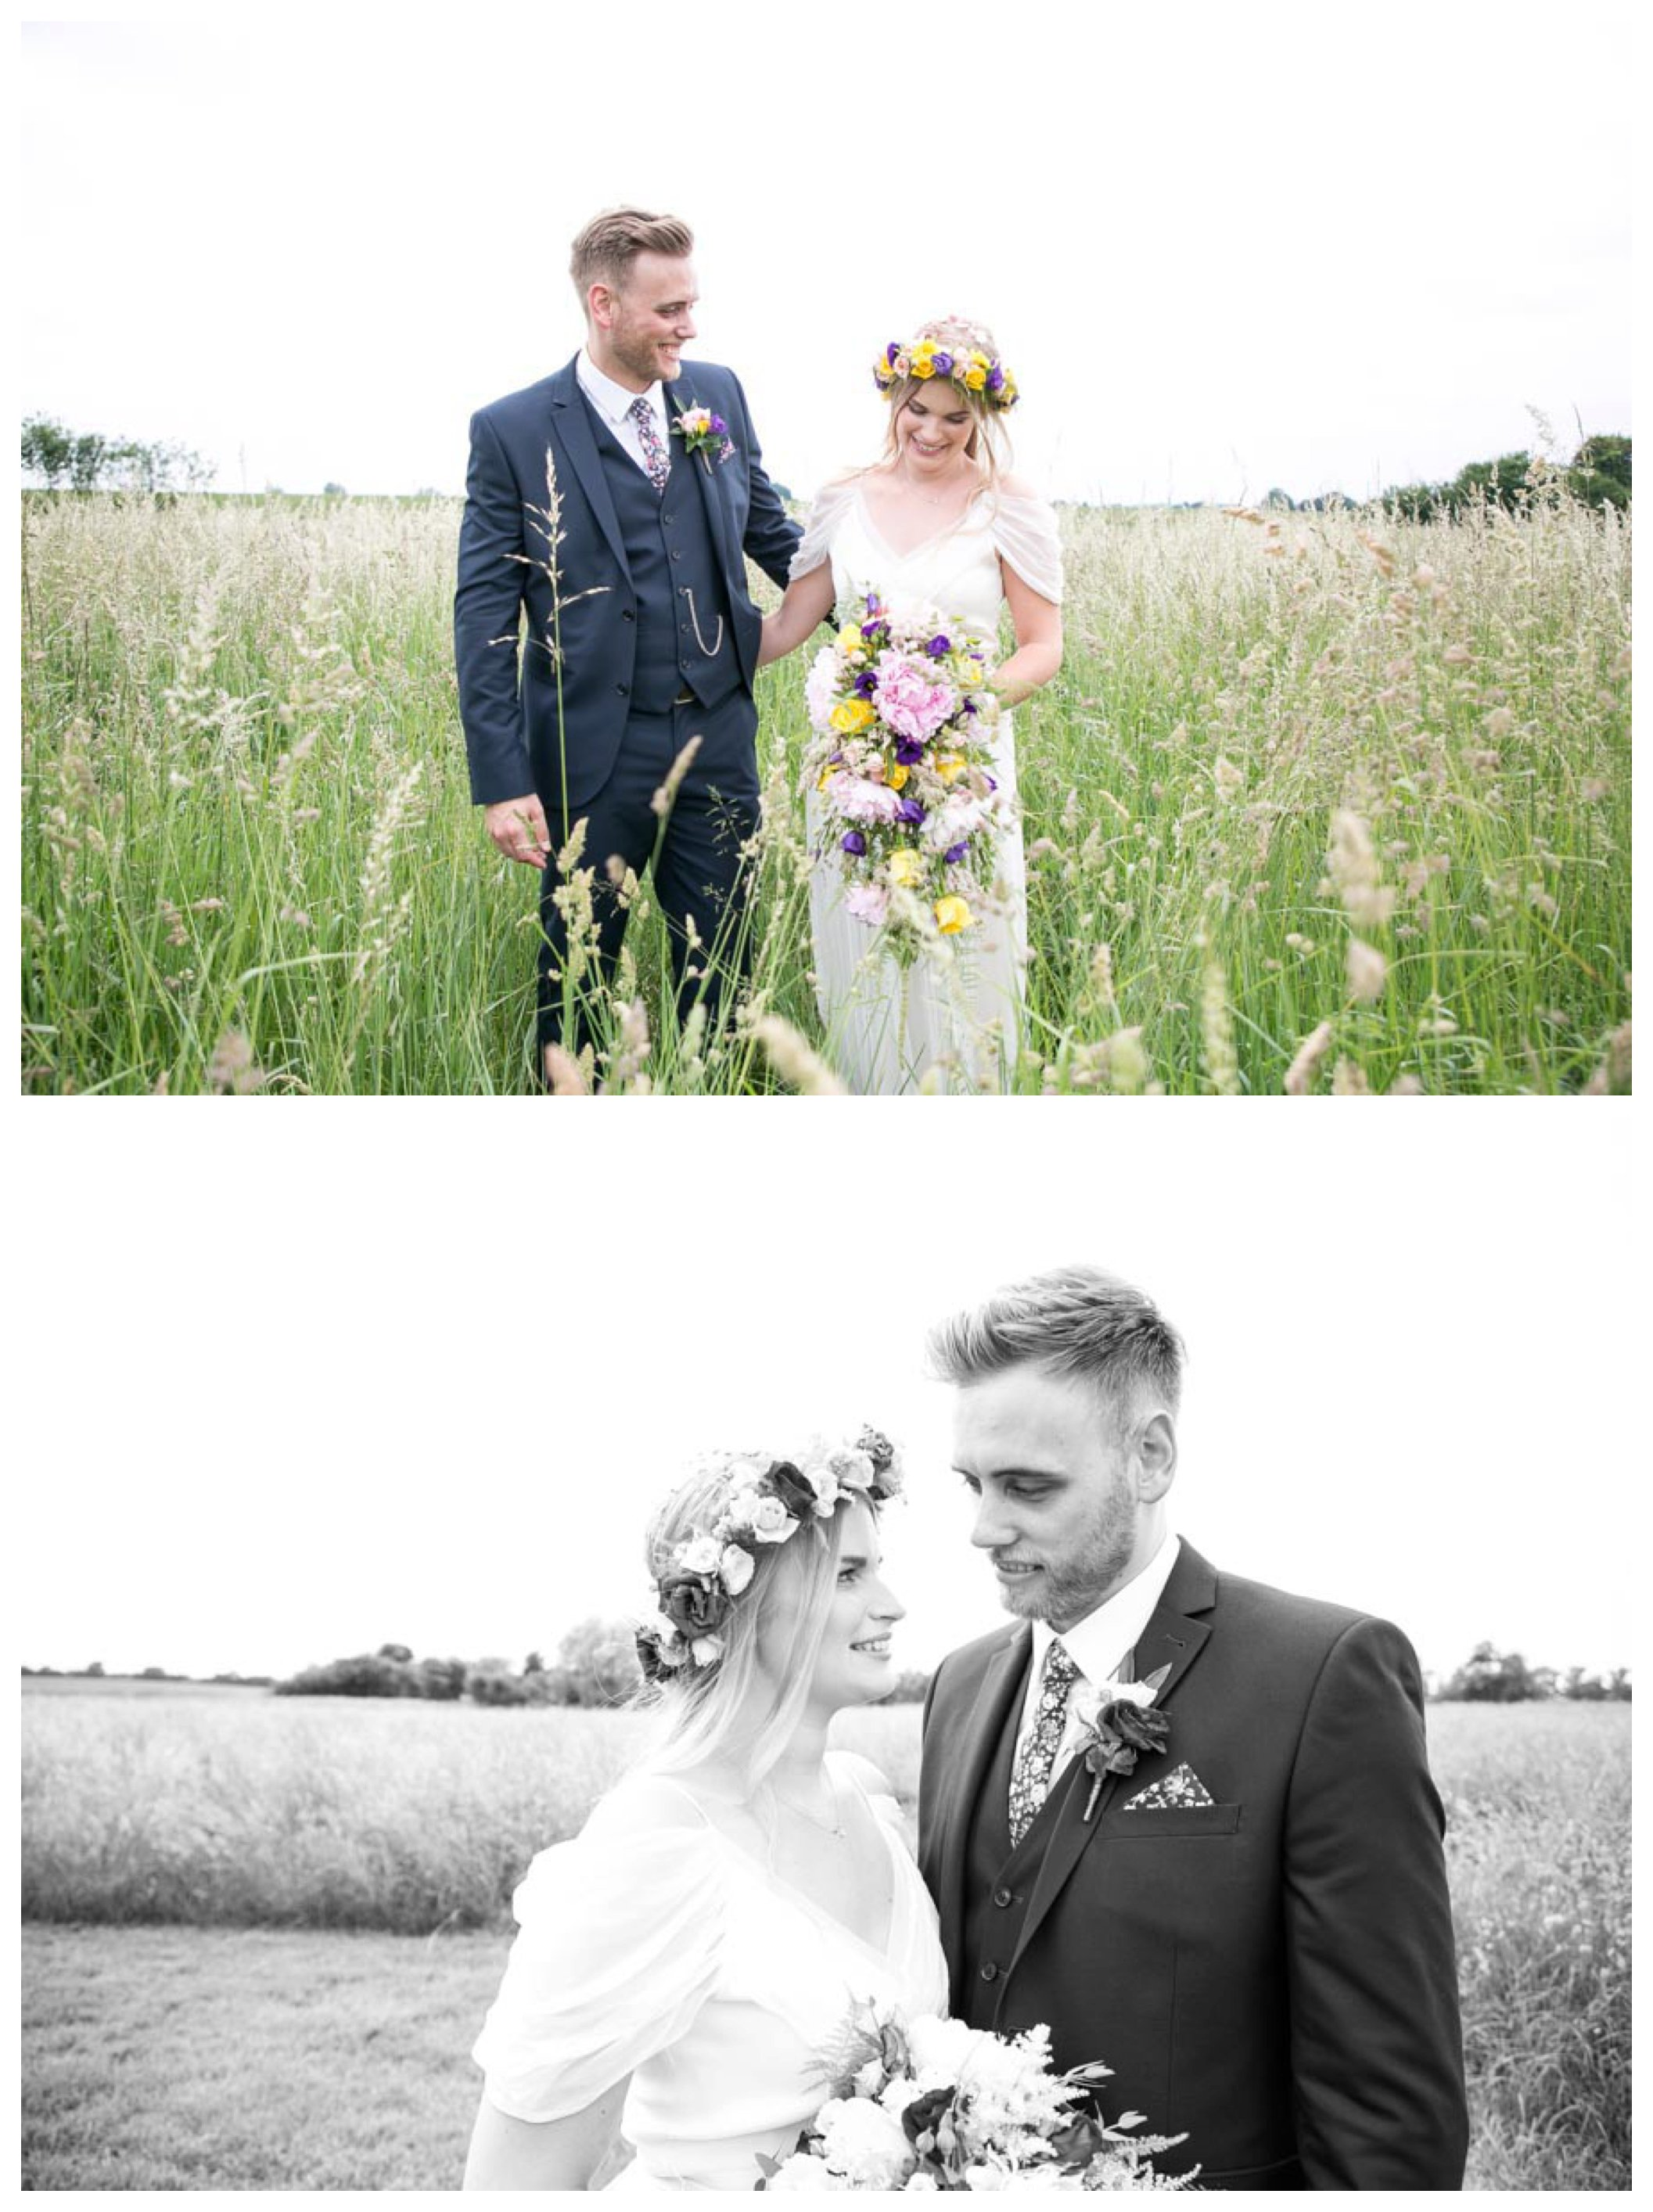 bride with flower crown and groom happy together in field at essex wedding